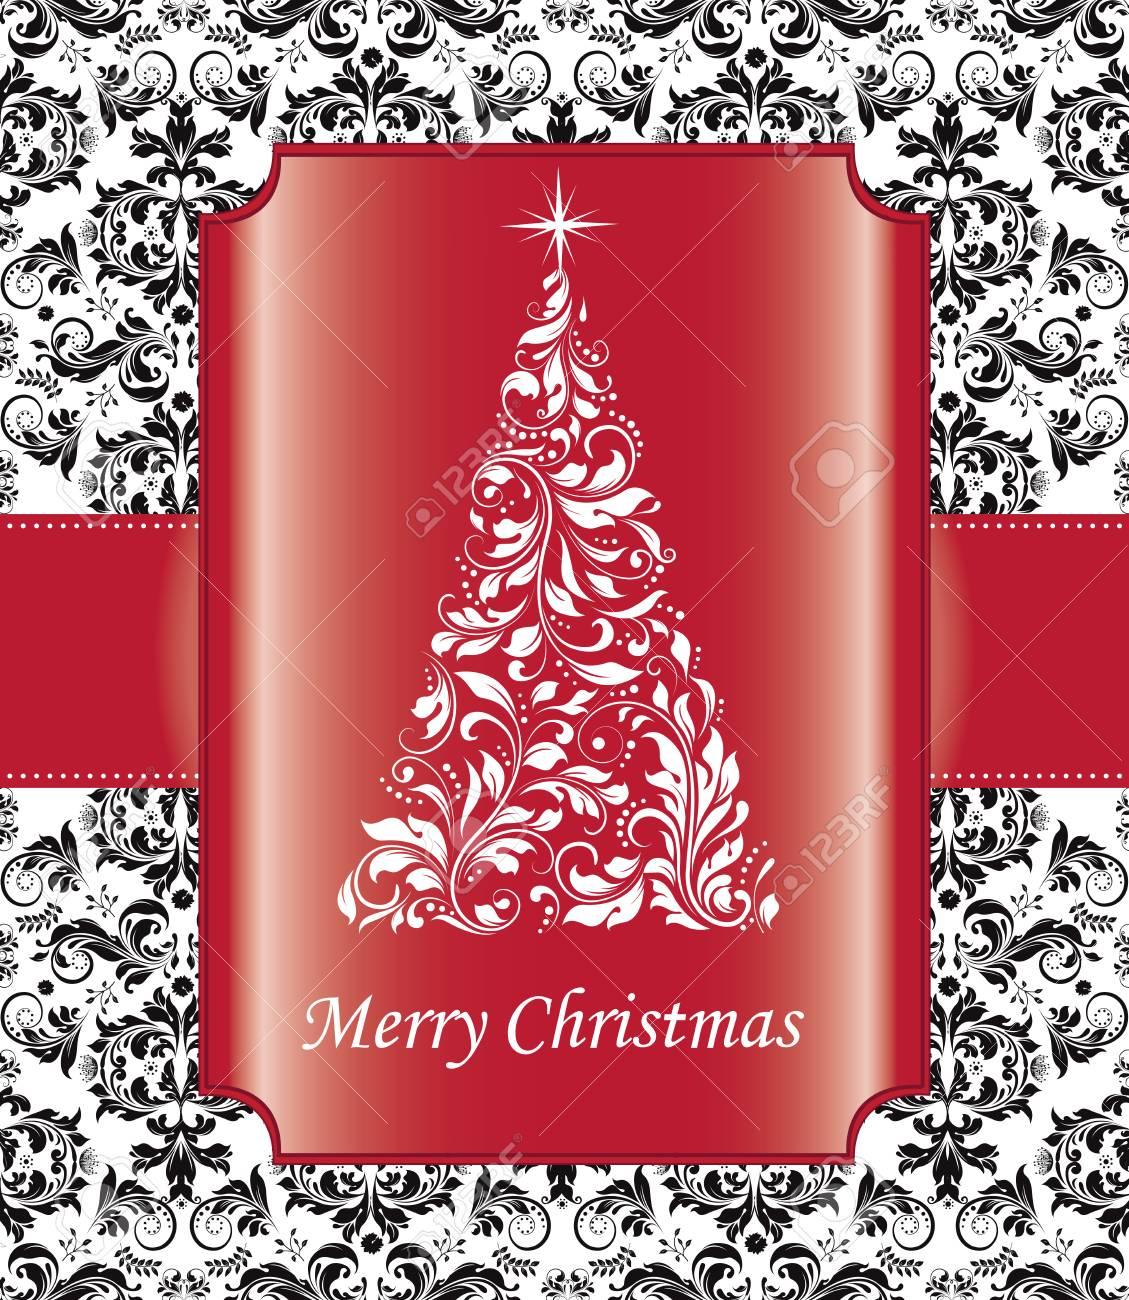 Vintage Christmas Card With Ornate Elegant Abstract Floral Design Royalty Free Cliparts Vectors And Stock Illustration Image 38130479